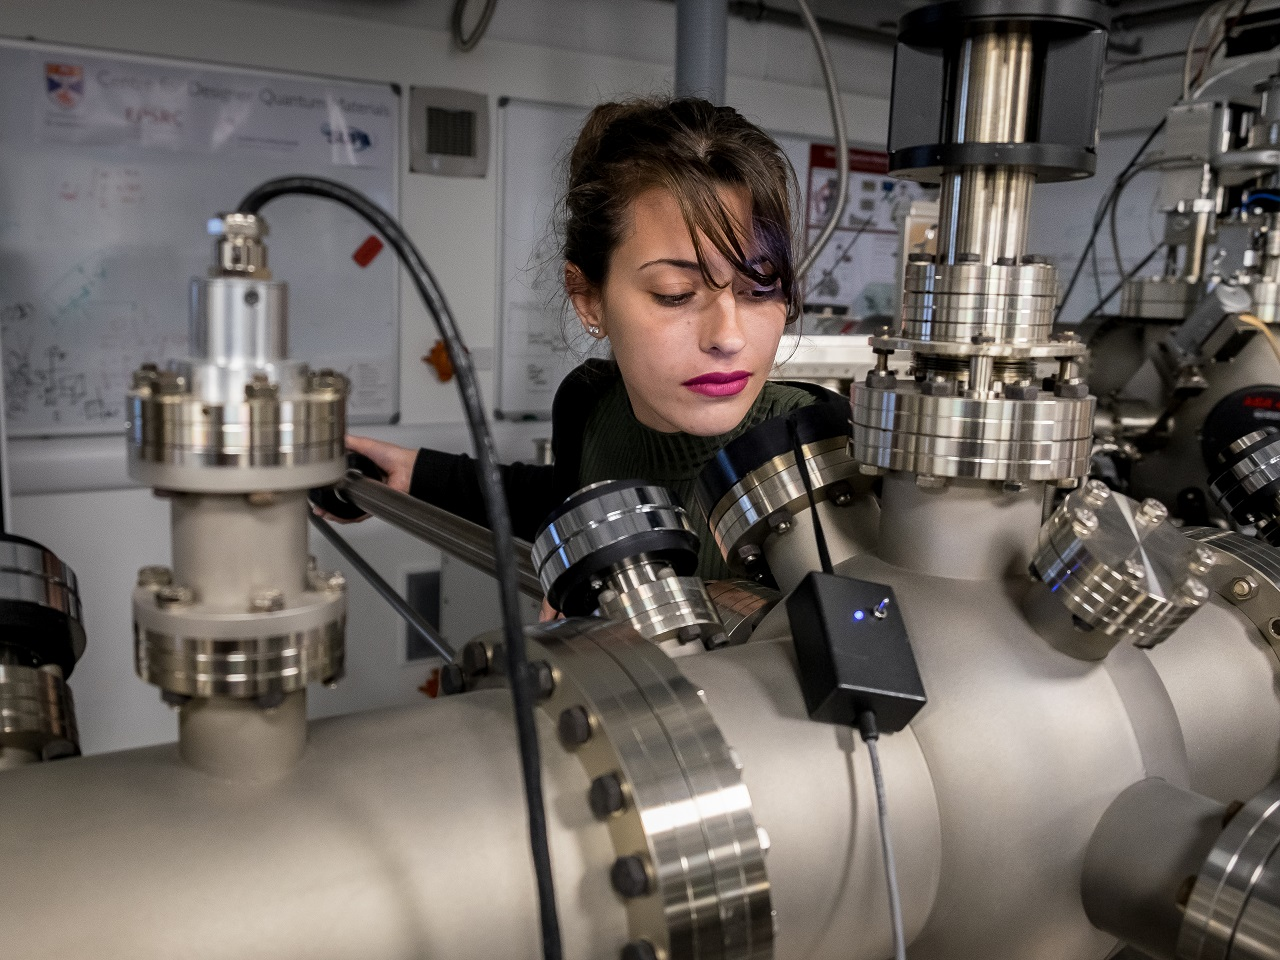 In our quantum materials research lab working with the high-ultra vacuum kit: copyright www.broaddaylightltd.co.uk